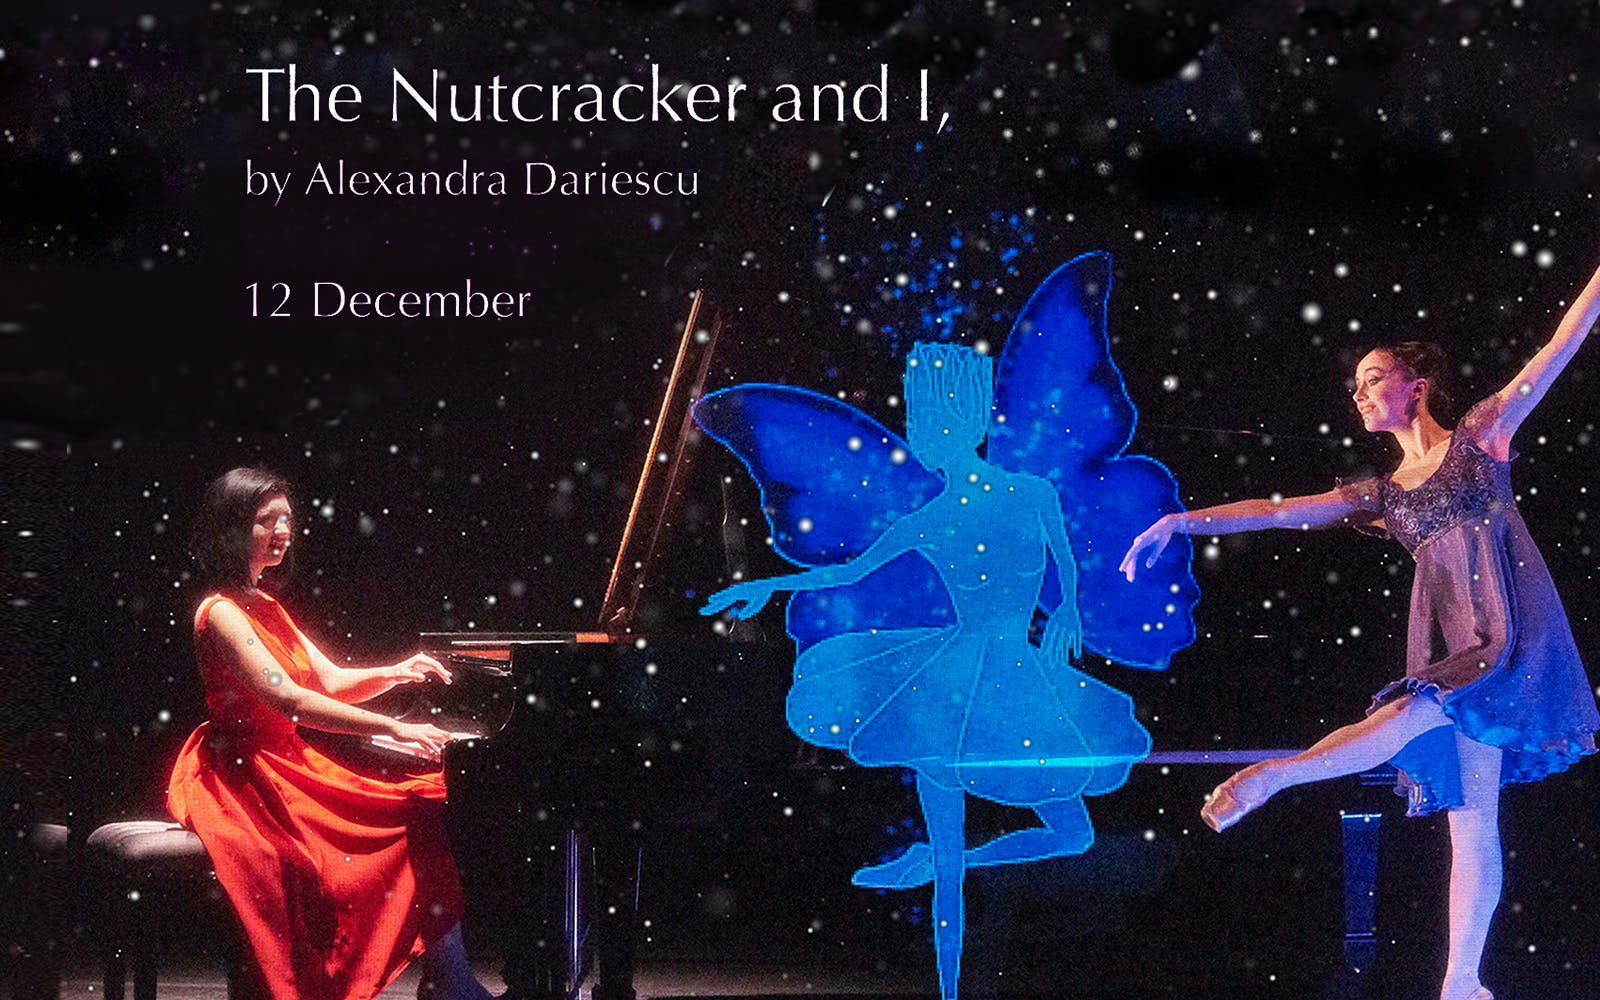 The Nutcracker and I